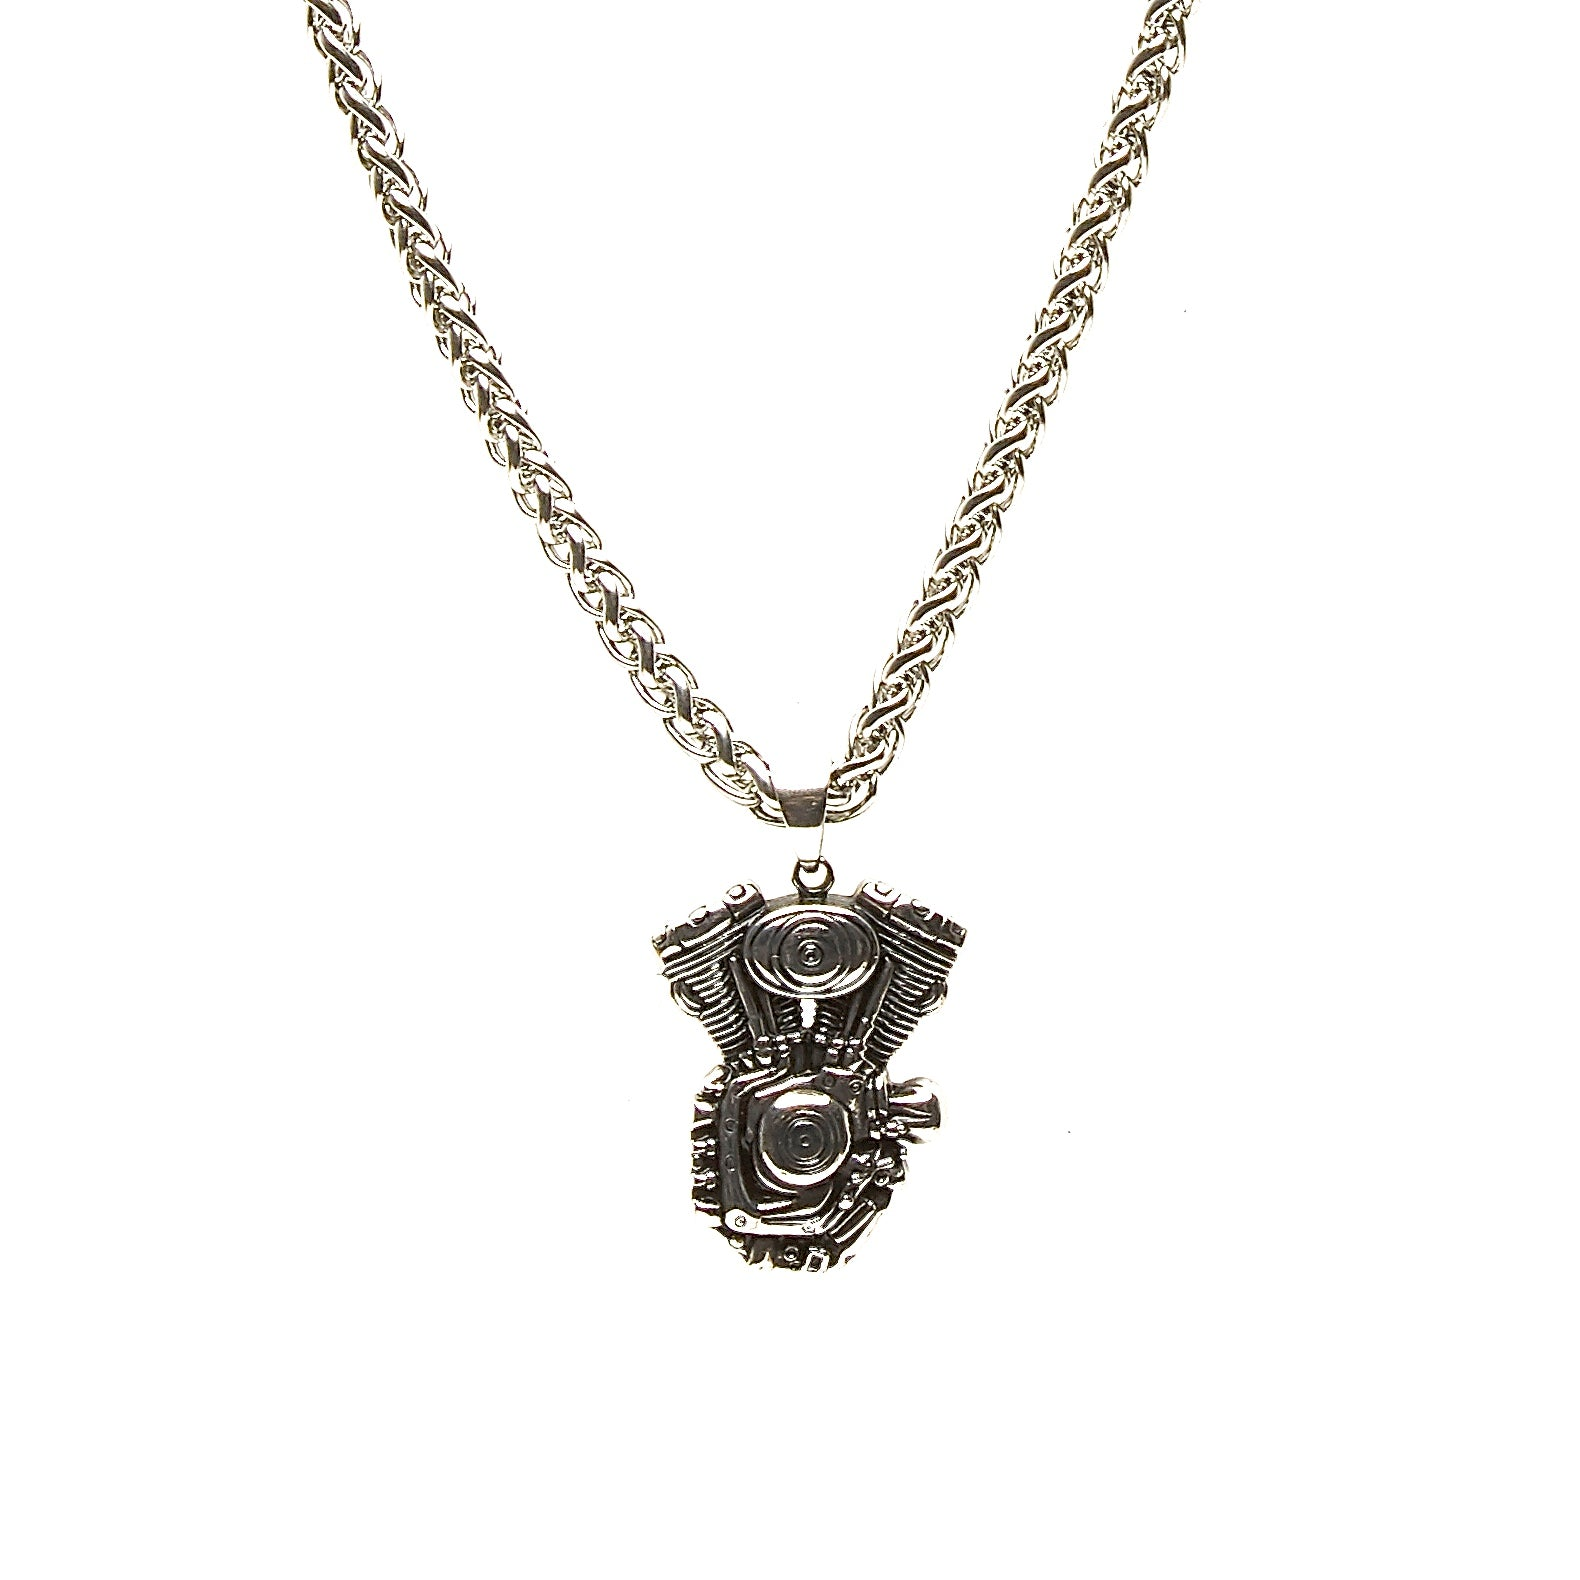 LND Motorcycle Engine Pendant in Stainless Steel